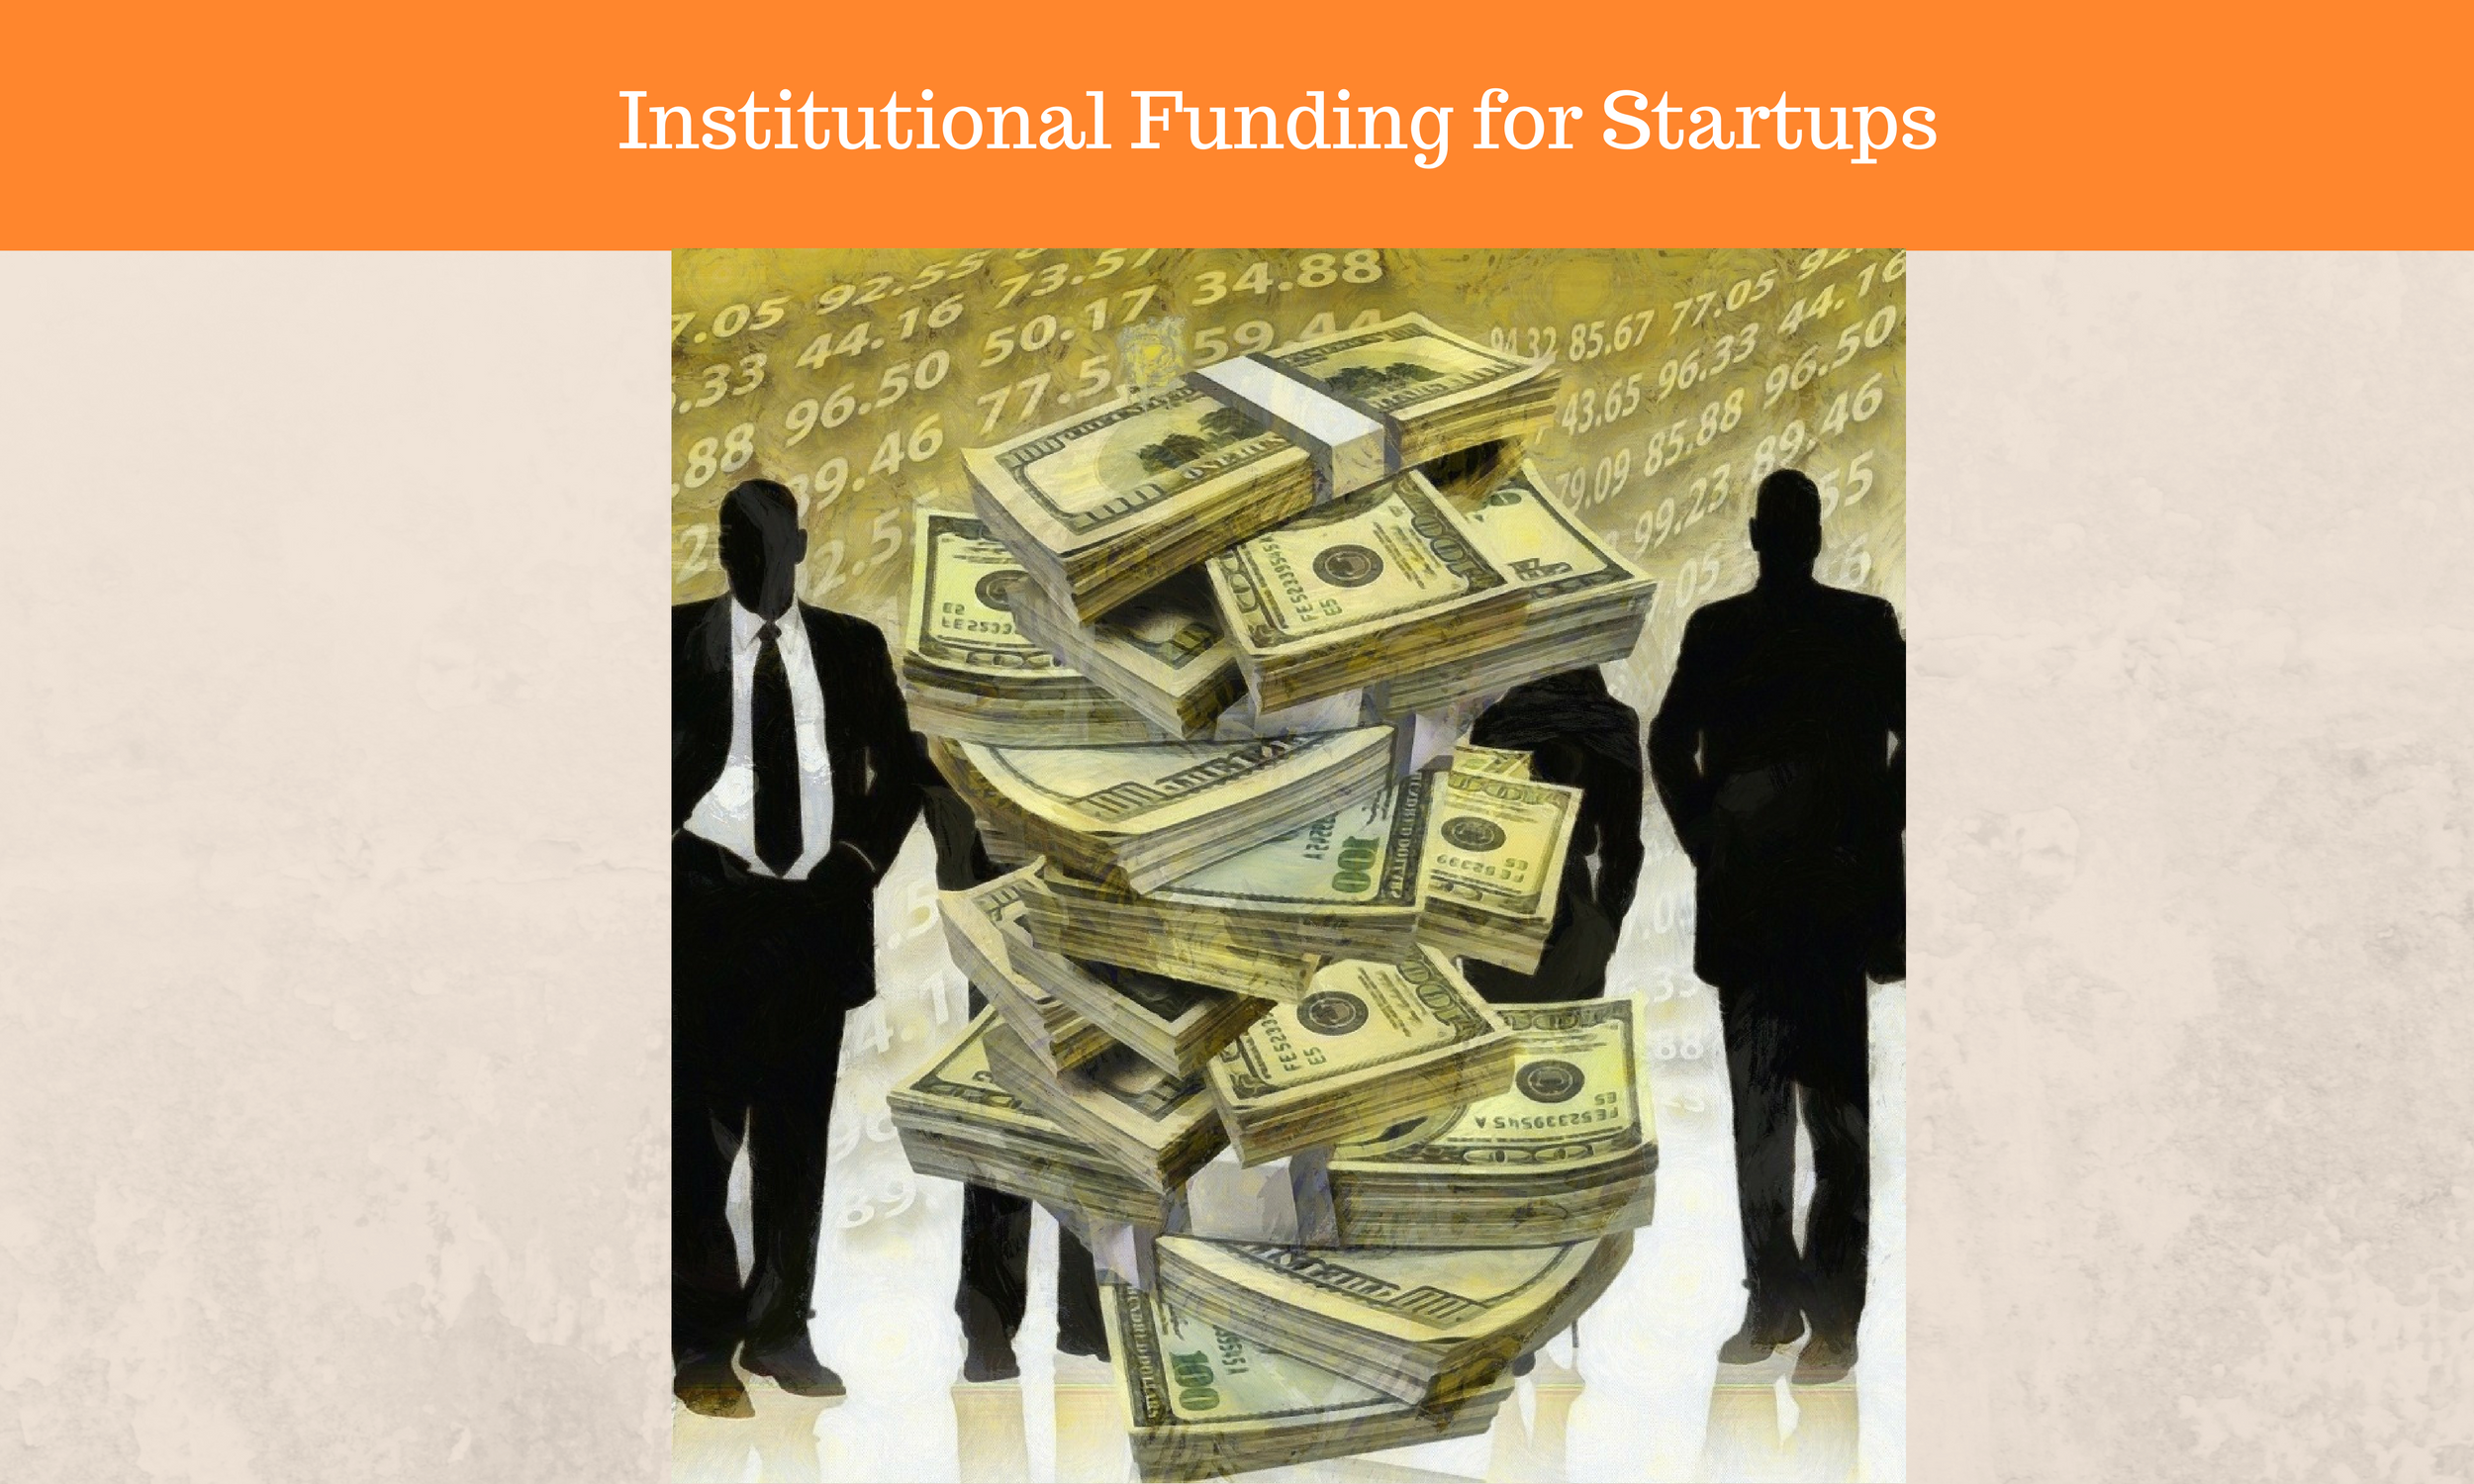 Get your first institutional funding for your startup